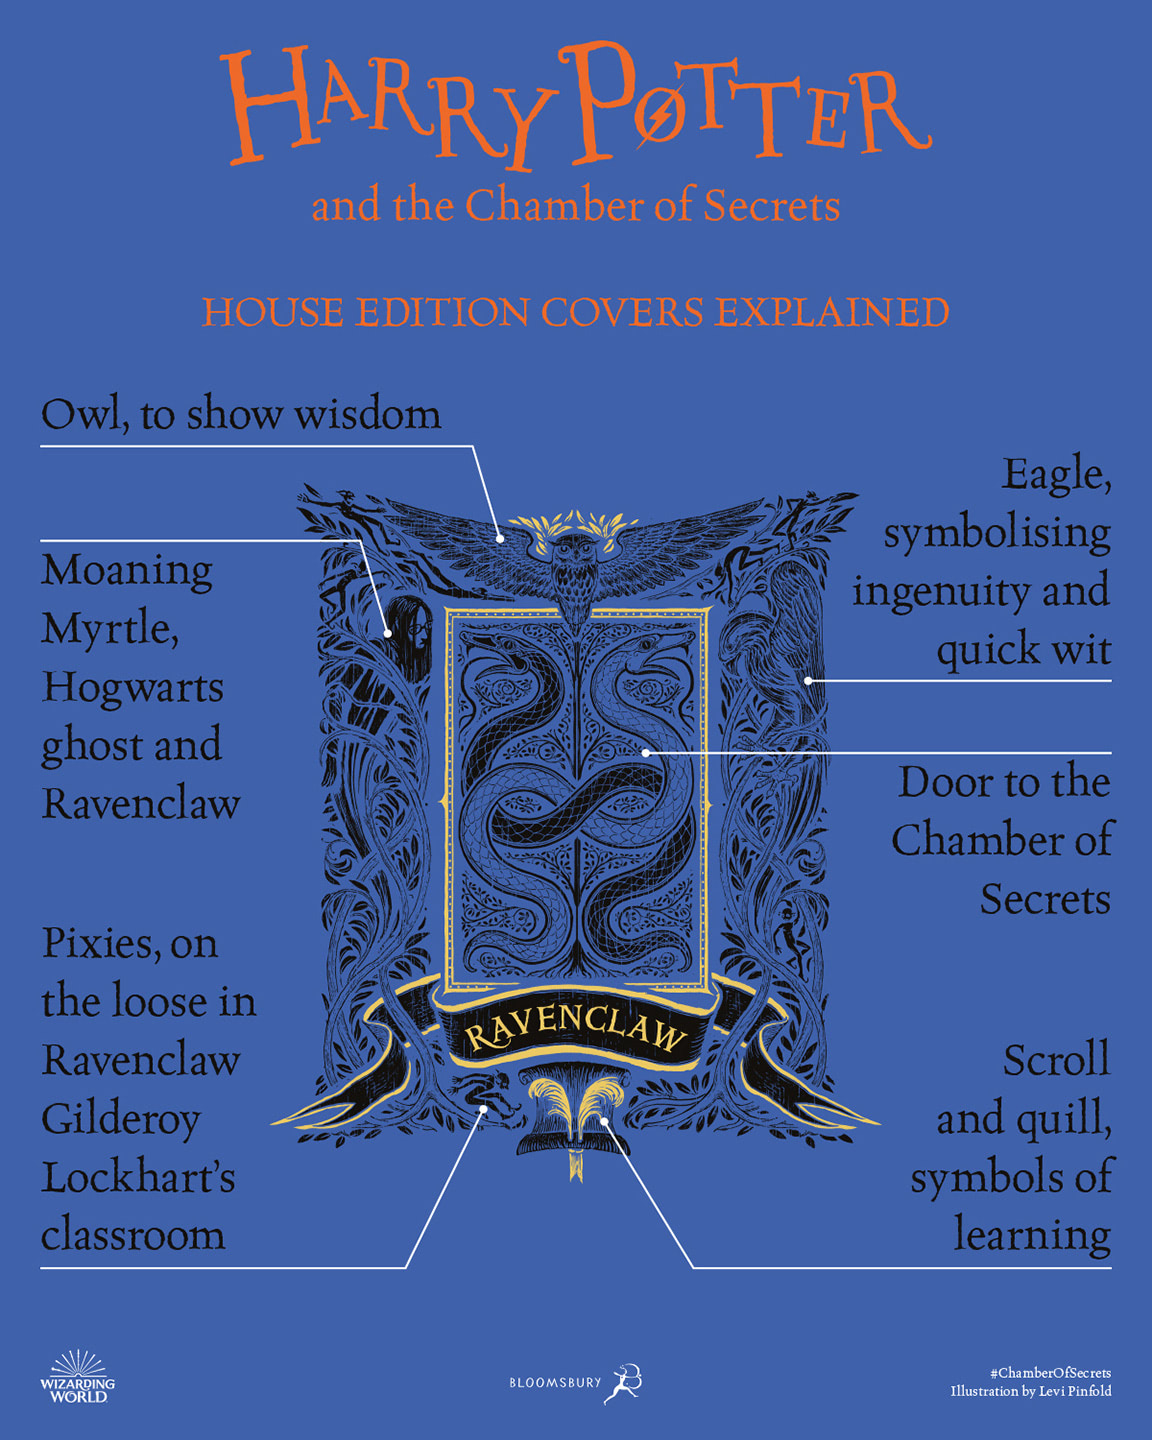 'Chamber of Secrets' house edition cover artwork chart (Ravenclaw)